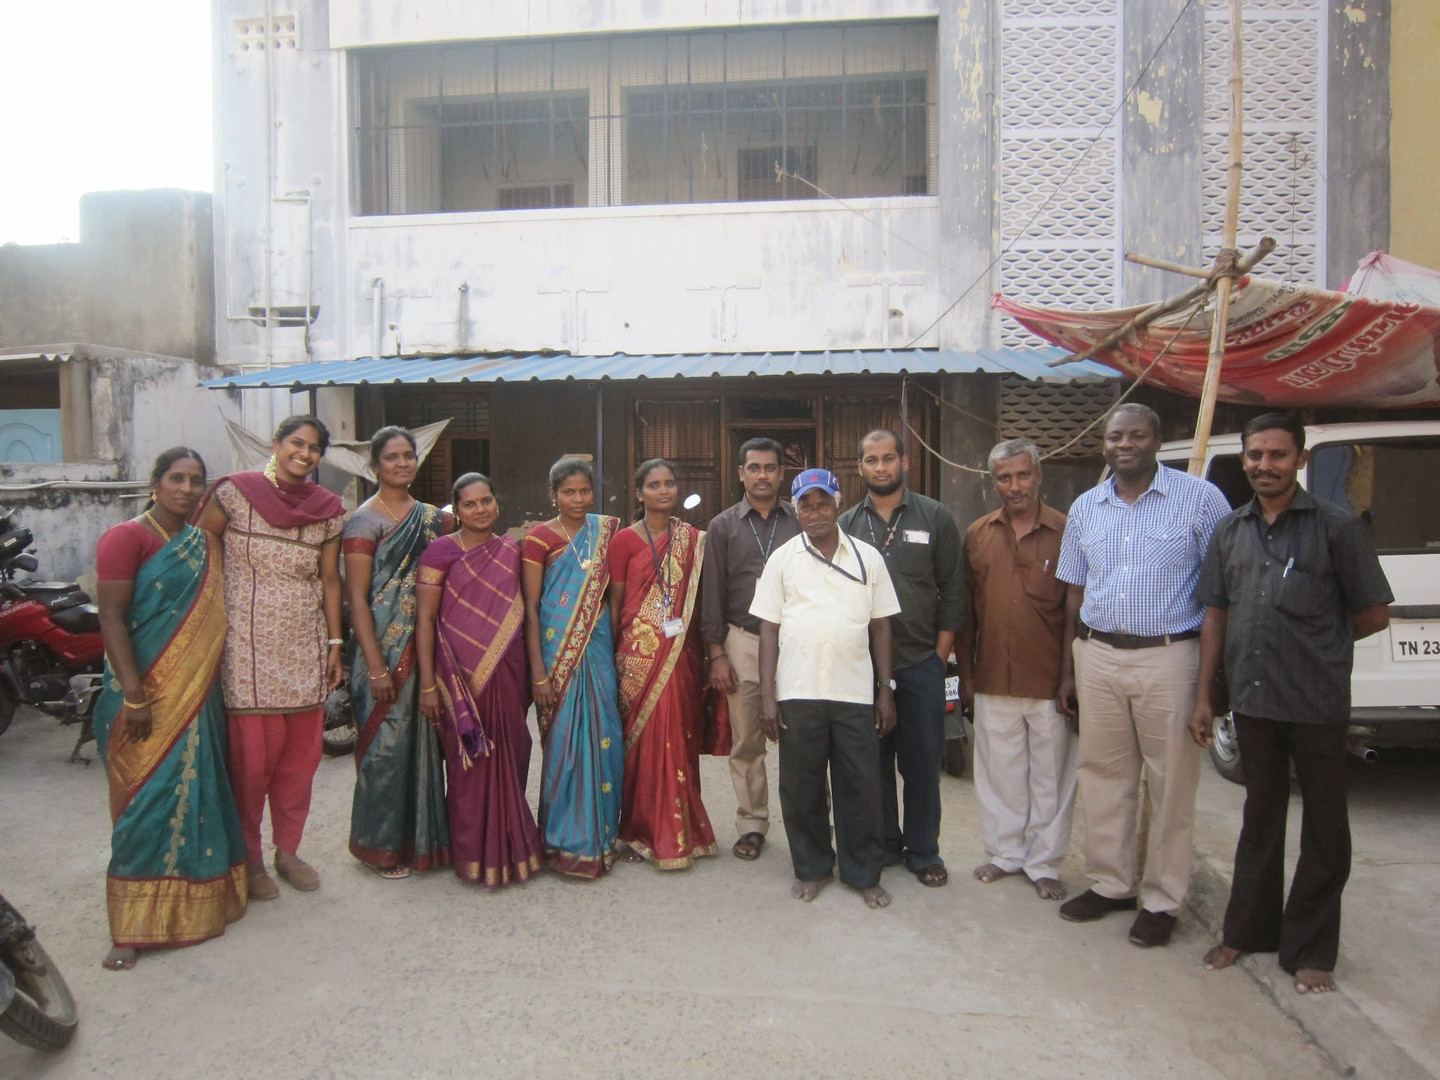 The staff in Vellore gathers for a group photo.